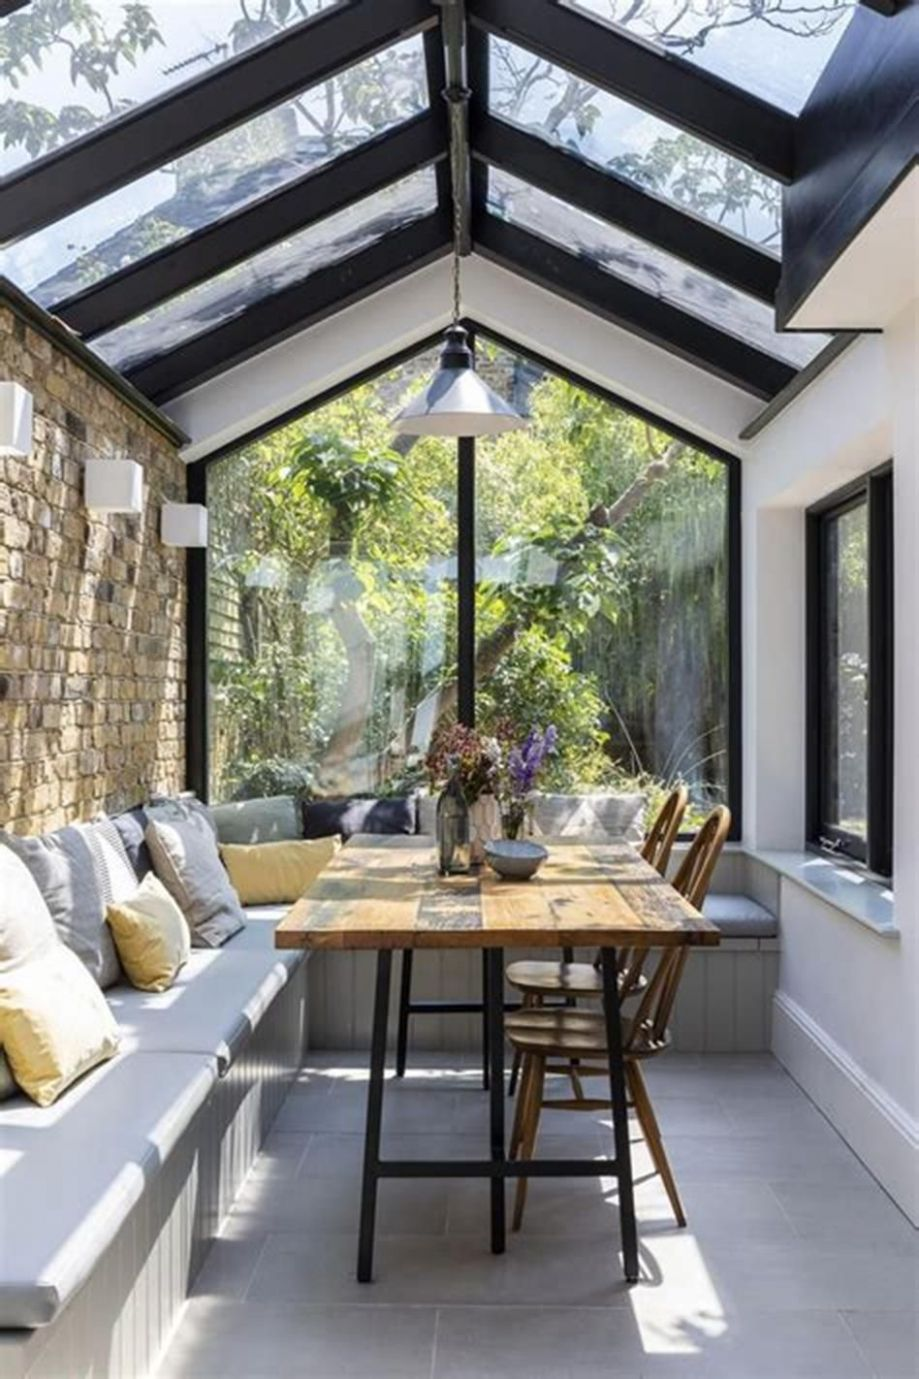 11 Cozy Sunroom Decorating Ideas On a Budget (With images) | Patio ...